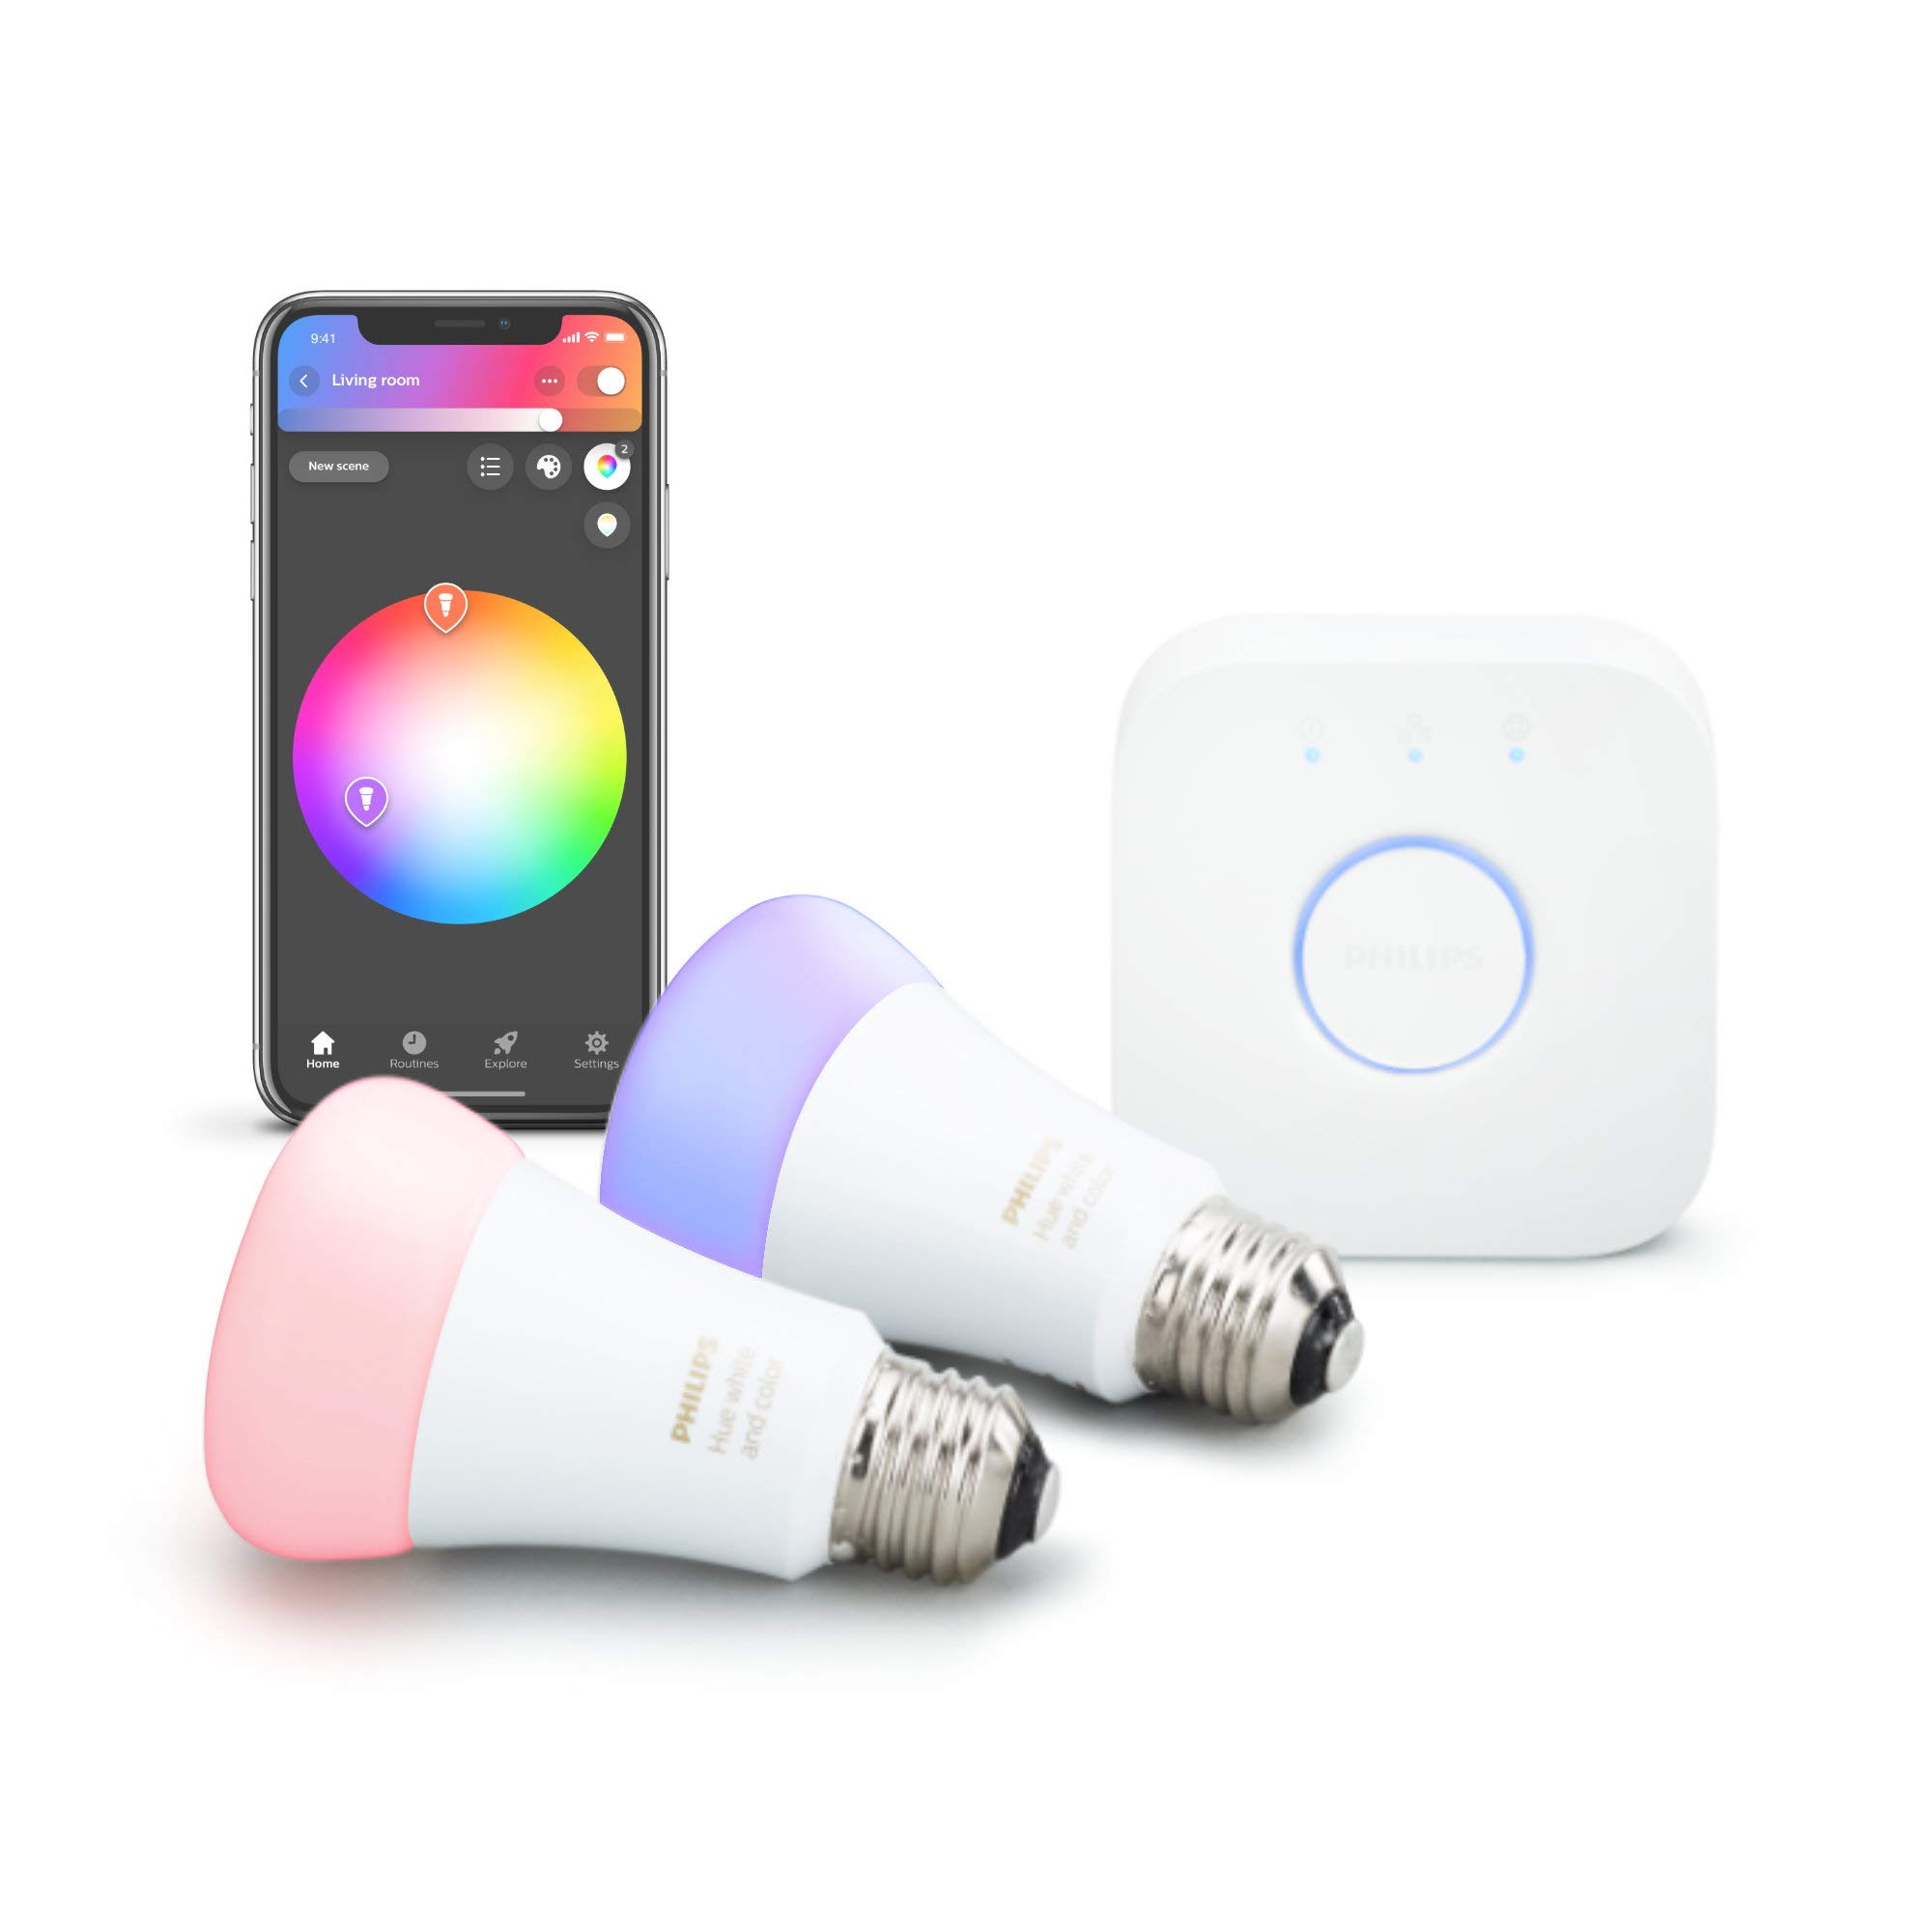 Philips Hue 2-Pack Premium Smart Light Starter Kit, 16 million colors, for most lamps & overhead lights, Works with Alexa, Apple HomeKit and Google Assistant